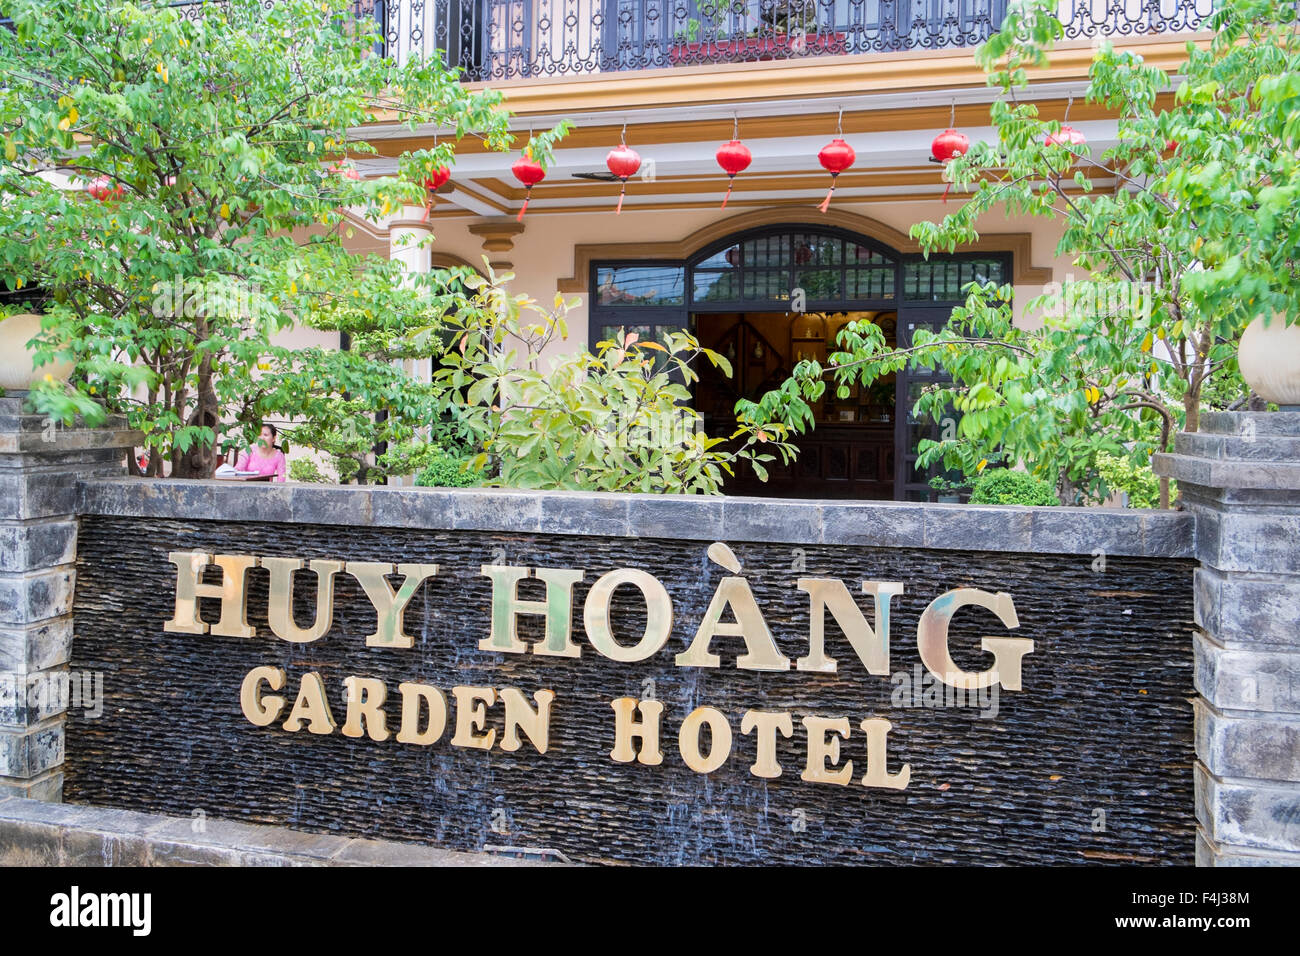 huy hoang vietnamese garden hotel in the ancient city of hoi an on the central coast of vietnam - Vietnamese Garden